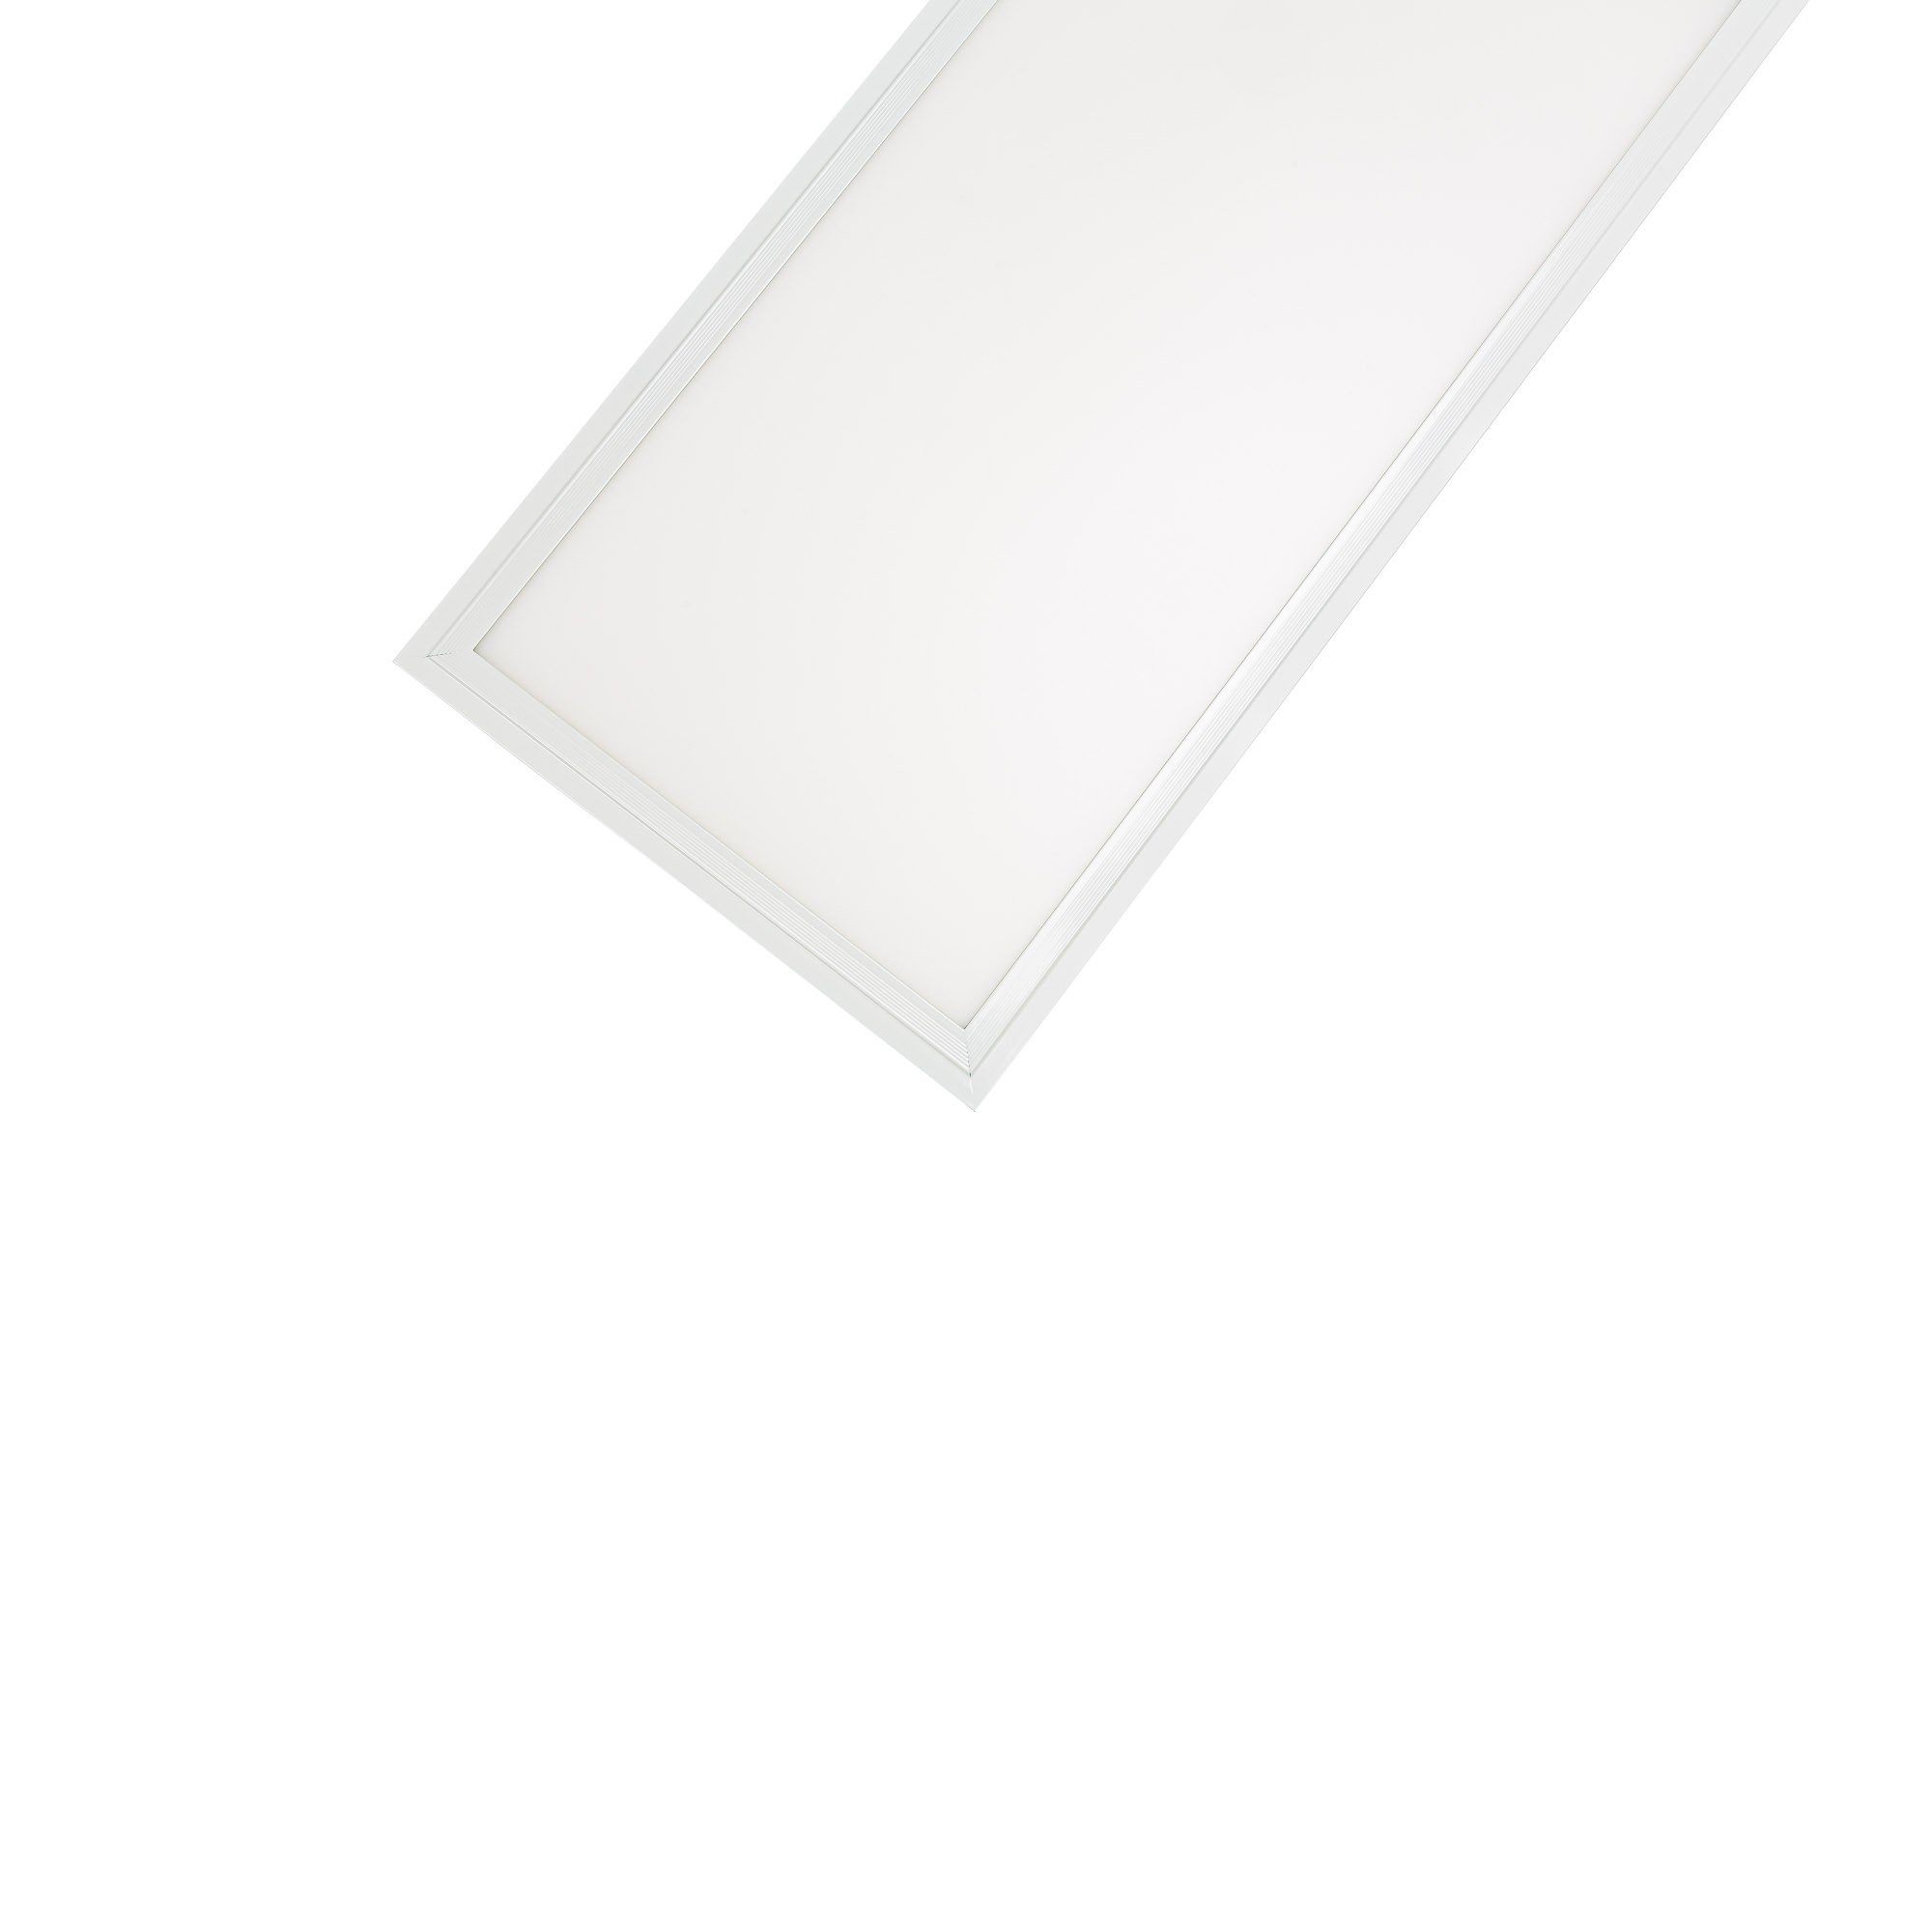 LED LIGHT PANEL - 18W - 300mm X 600mm - 4000K